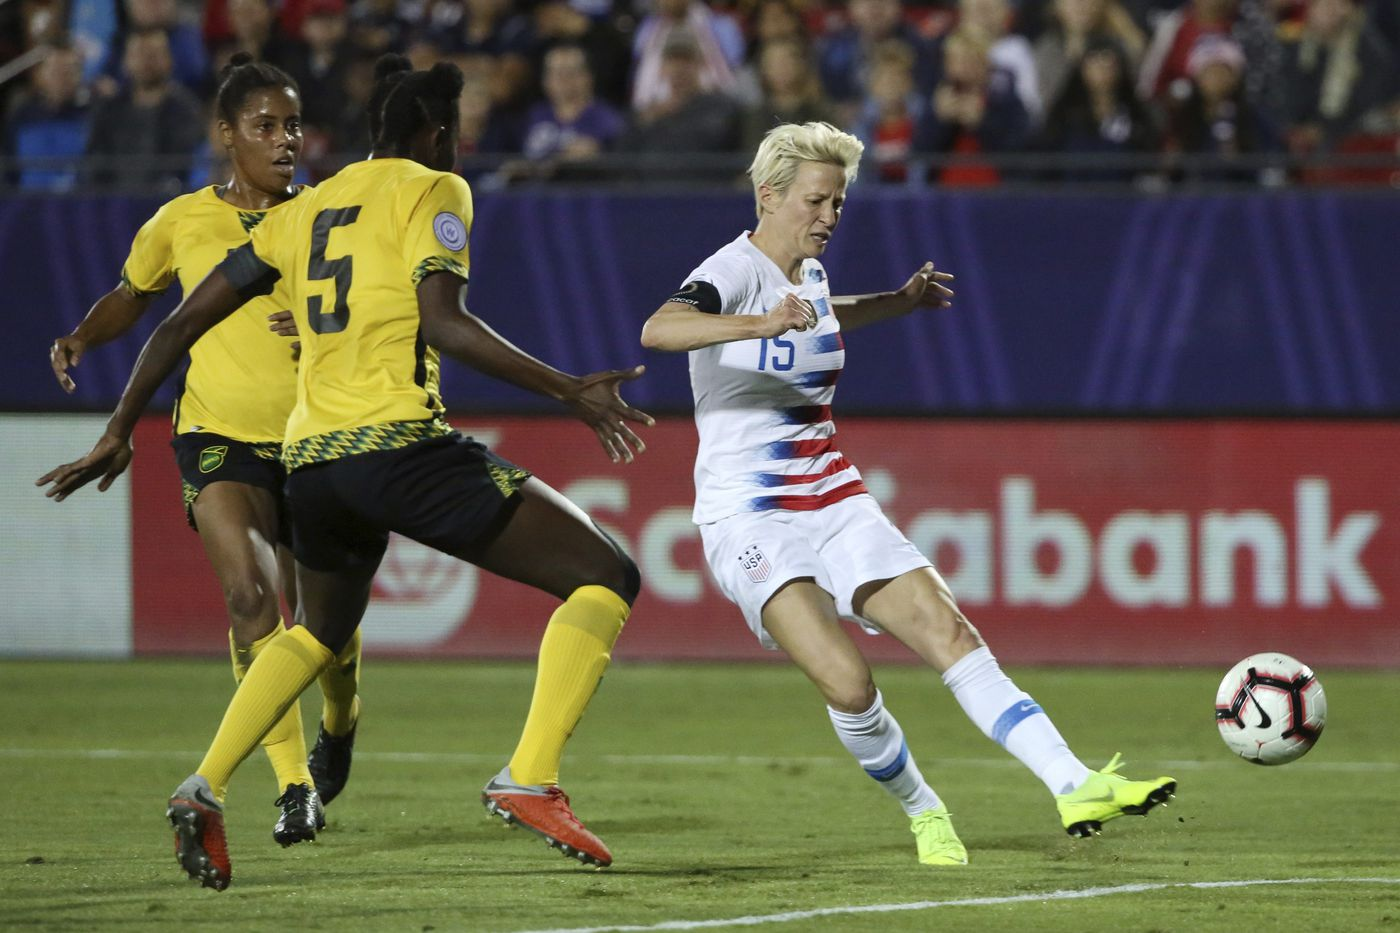 USWNT's Megan Rapinoe says FIFA doesn't 'truly care' about women's soccer